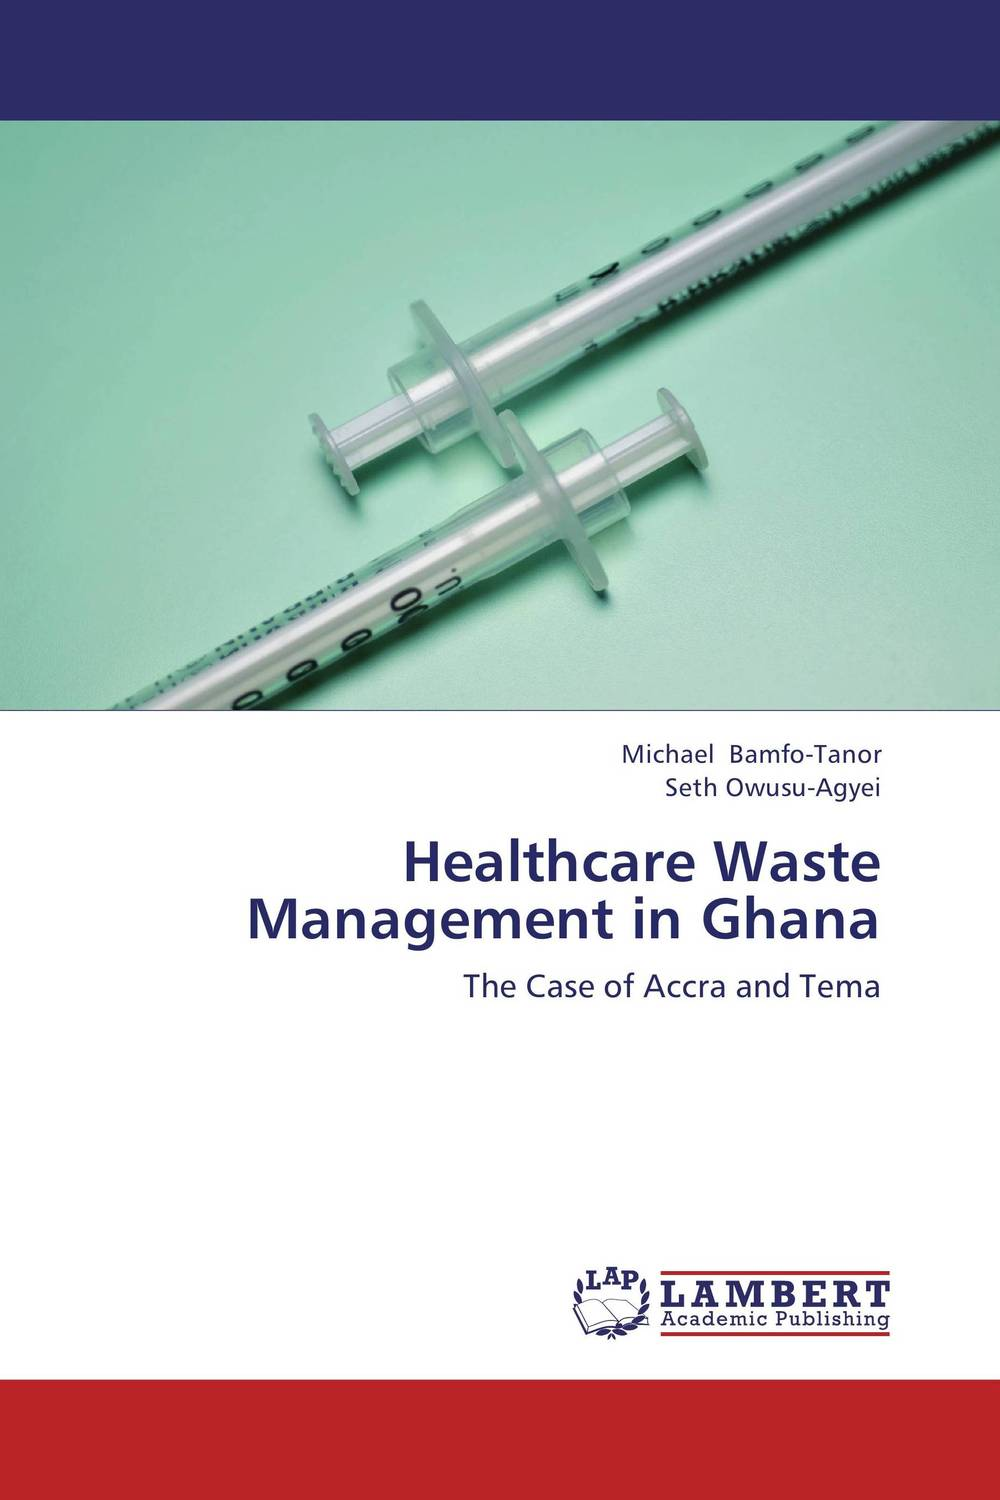 Healthcare Waste Management in Ghana